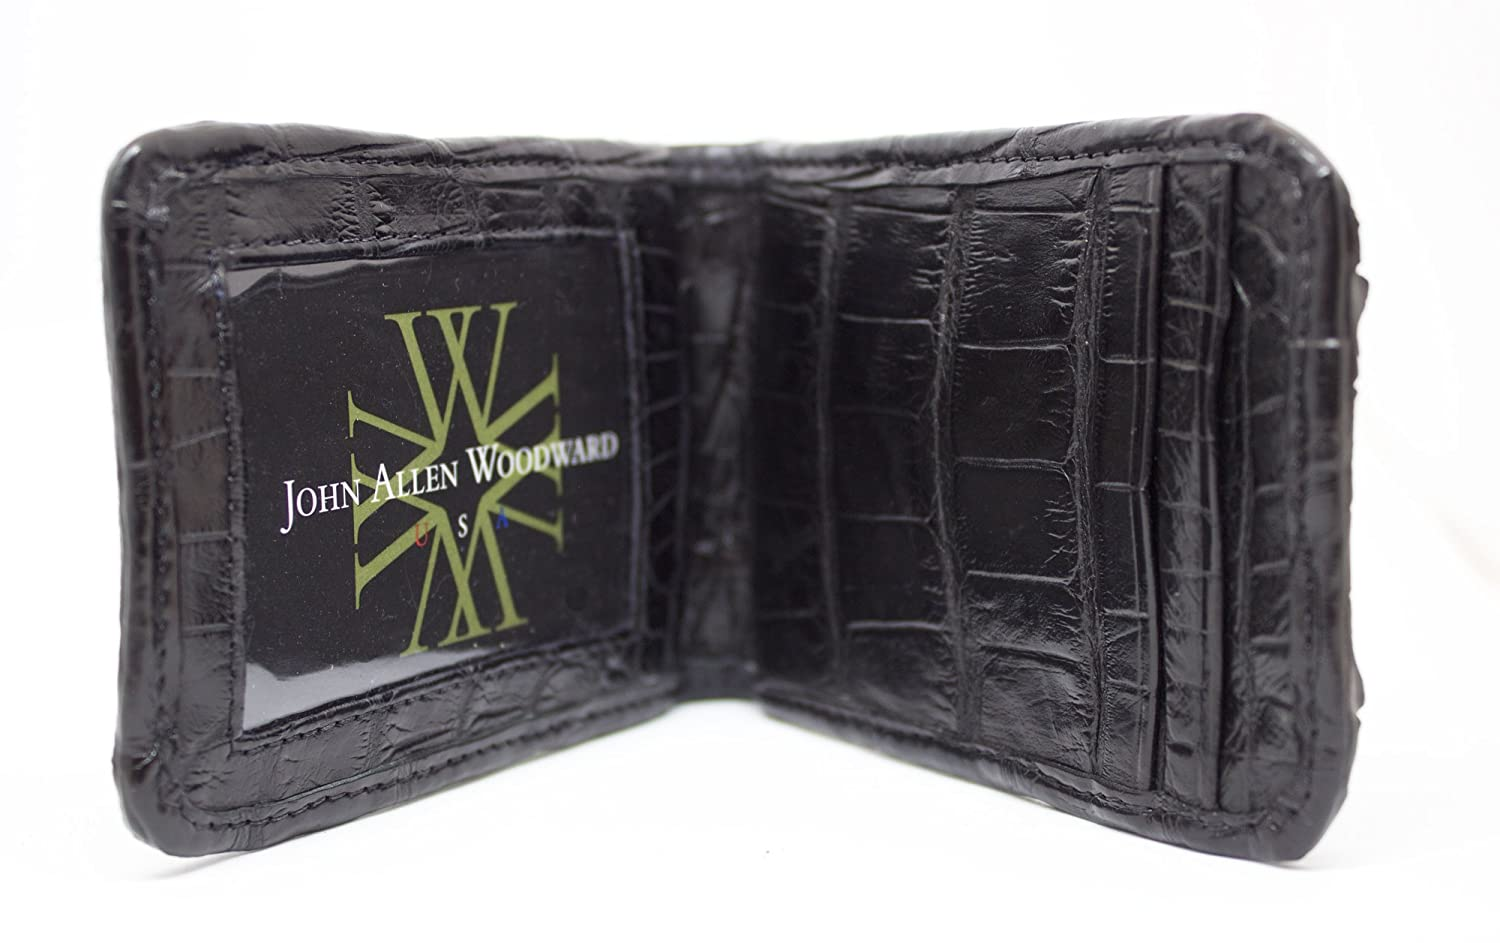 Slim ID window and Credit Card Pockets Crocodile front pocket collection by John Allen Woodward wynnhbagblmcw Hornback Alligator Money Clip Wallet with Sterling Silver Cross